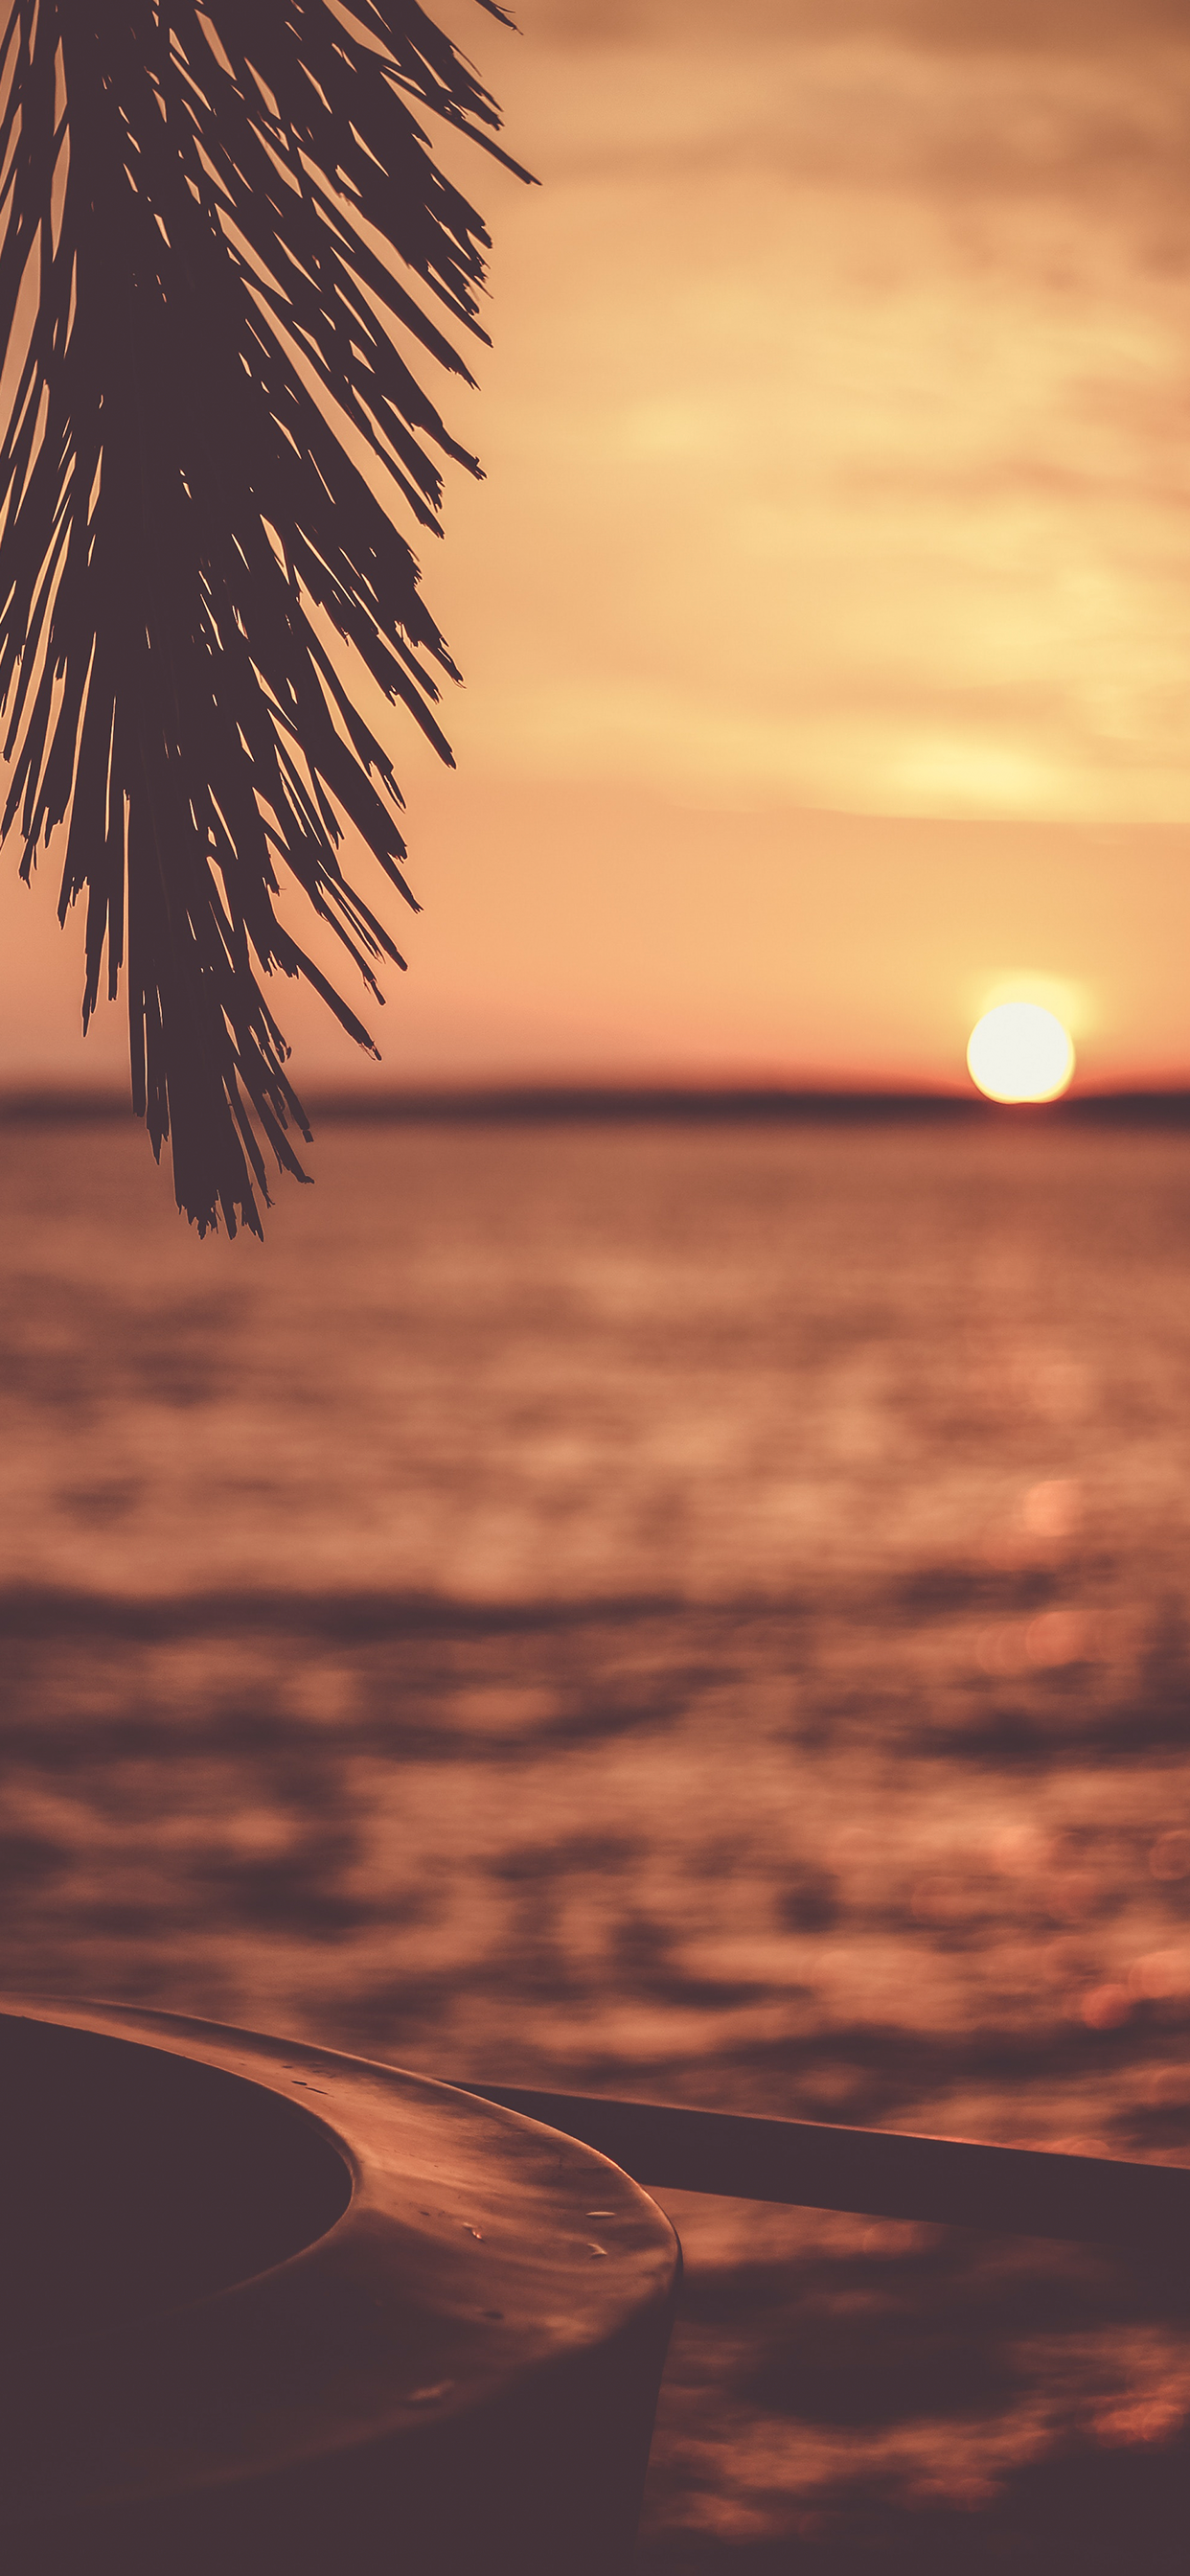 Sunset Wallpaper For Iphone X 8 7 6 Free Download On